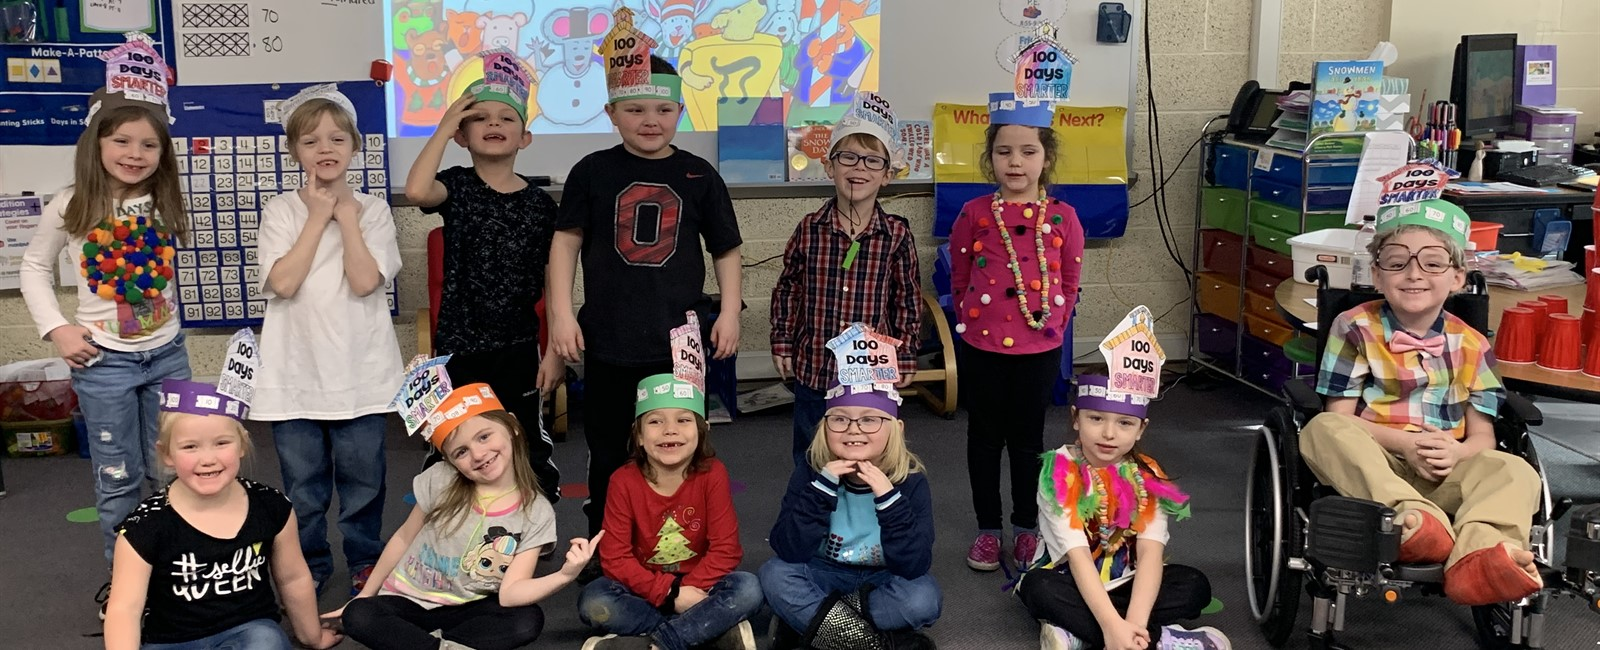 Our Kindergarten classes are 100 days smarter!